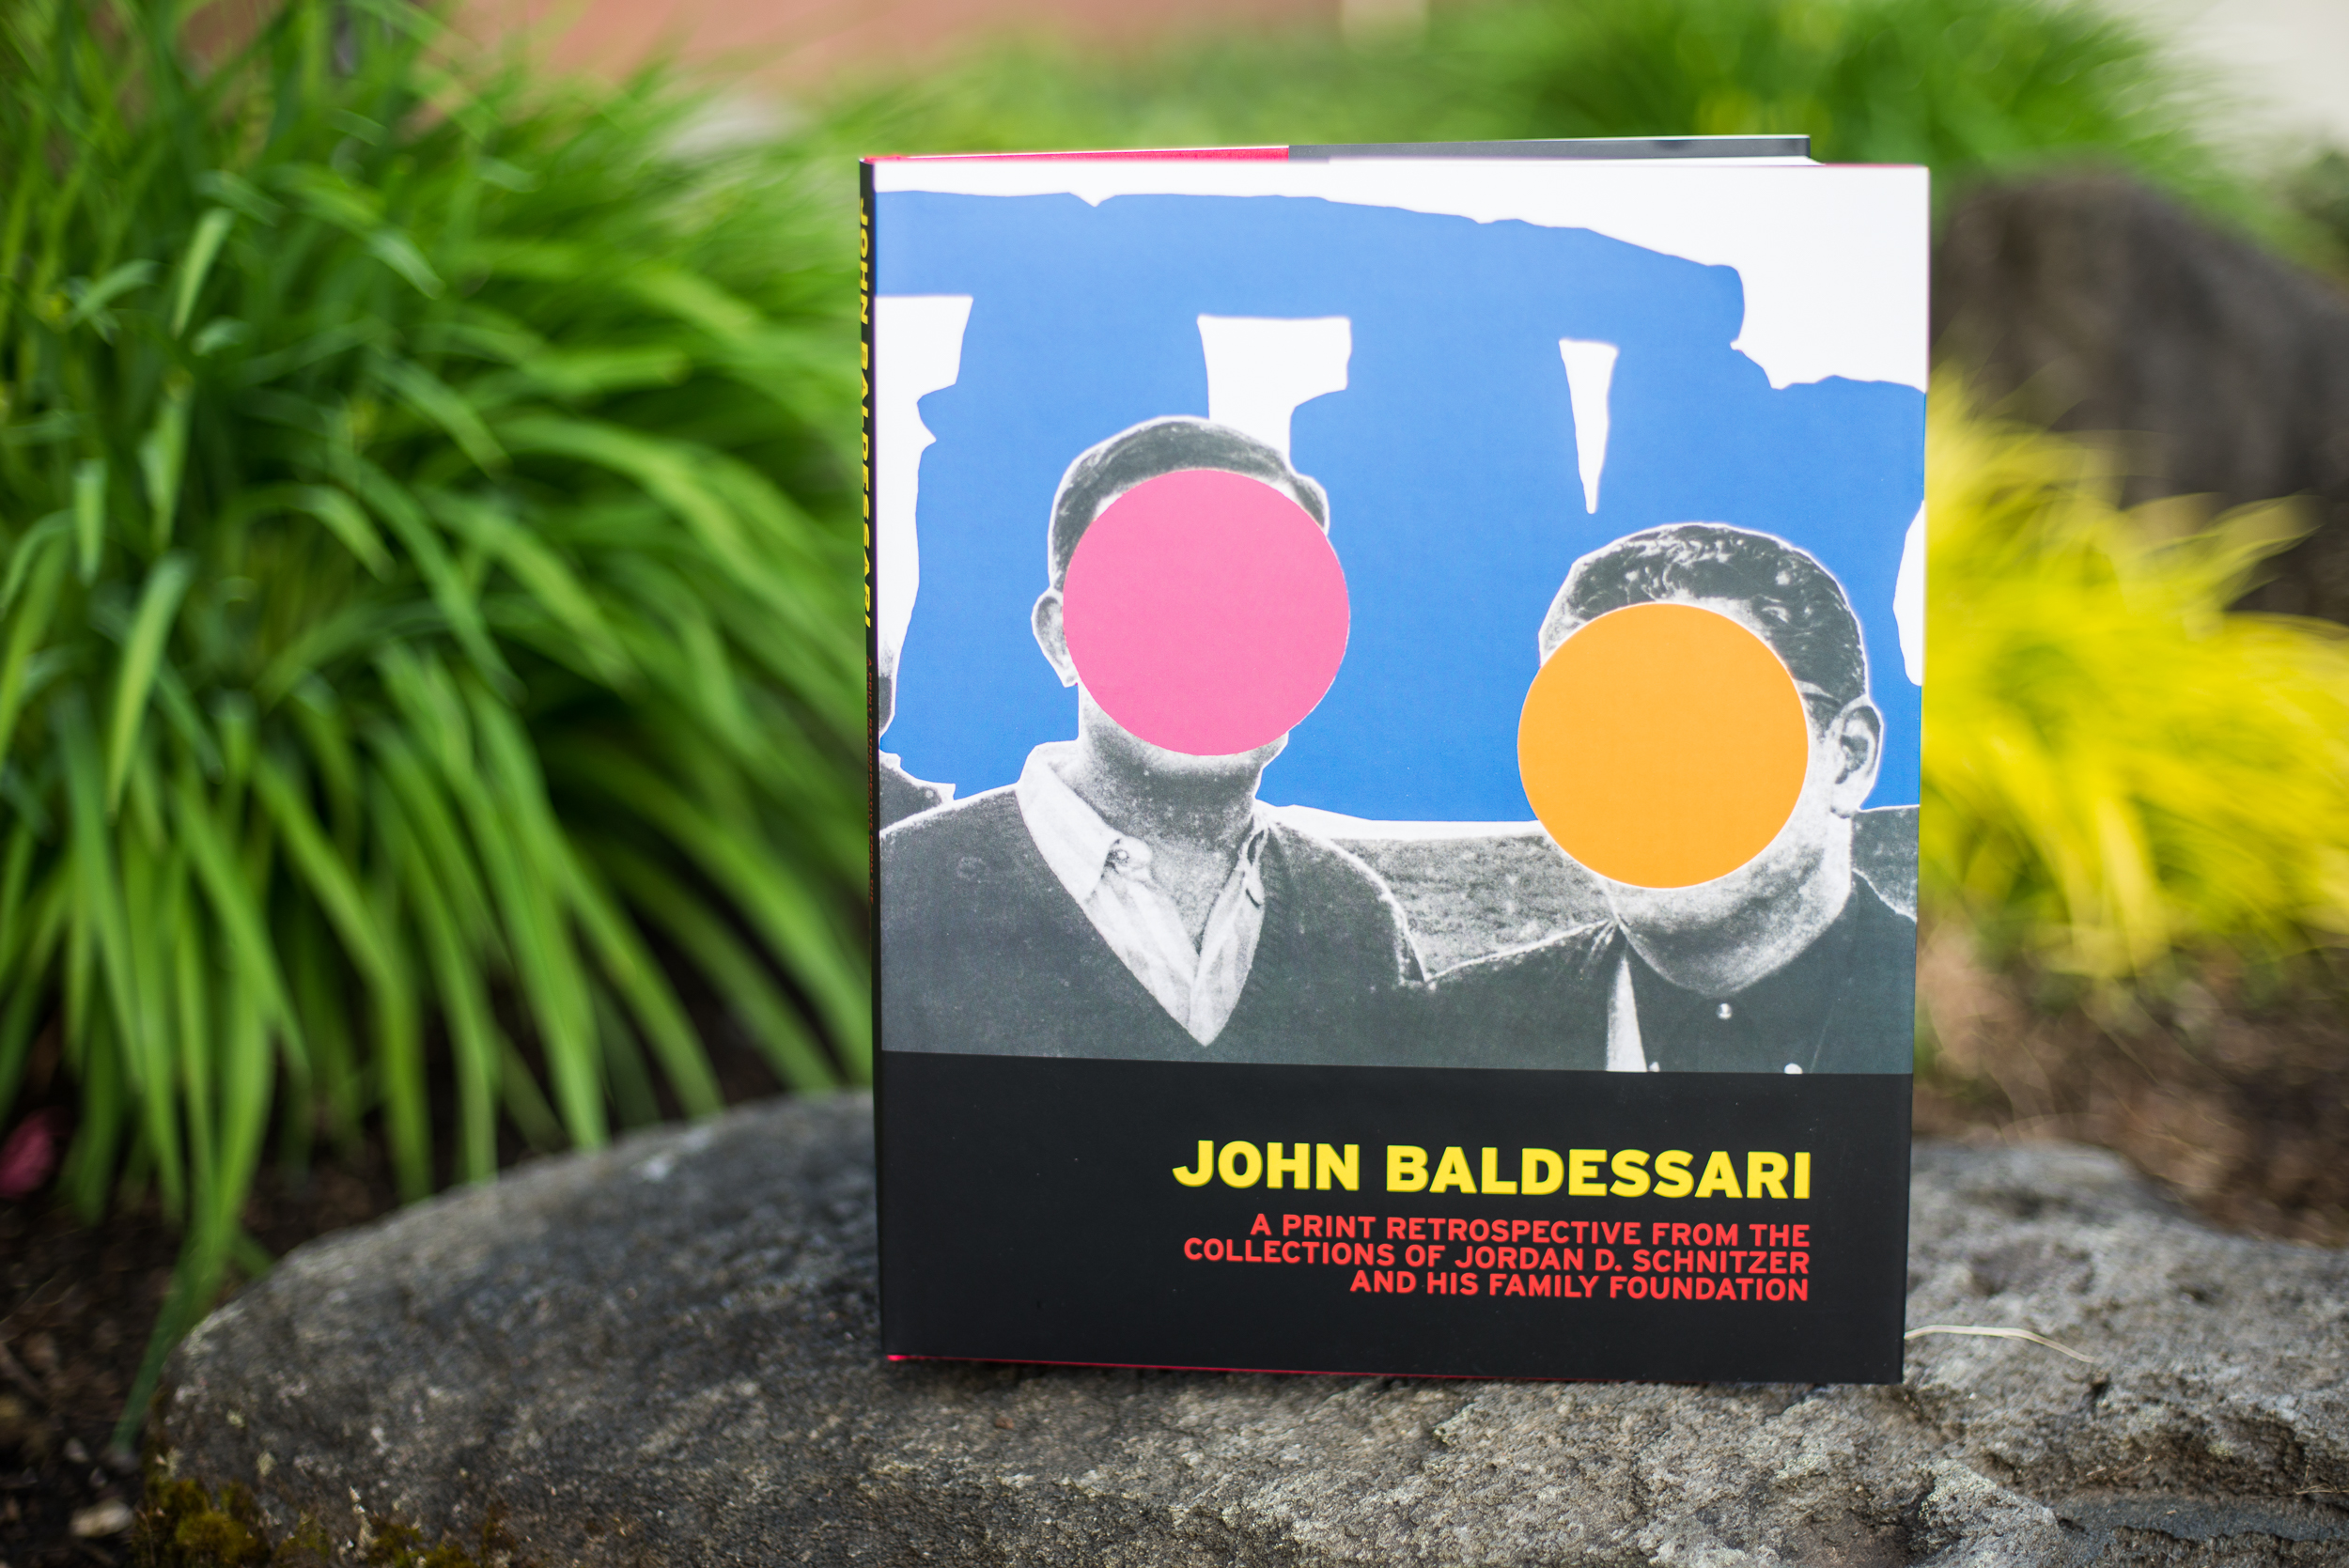 Baldessari-book-4938.jpg